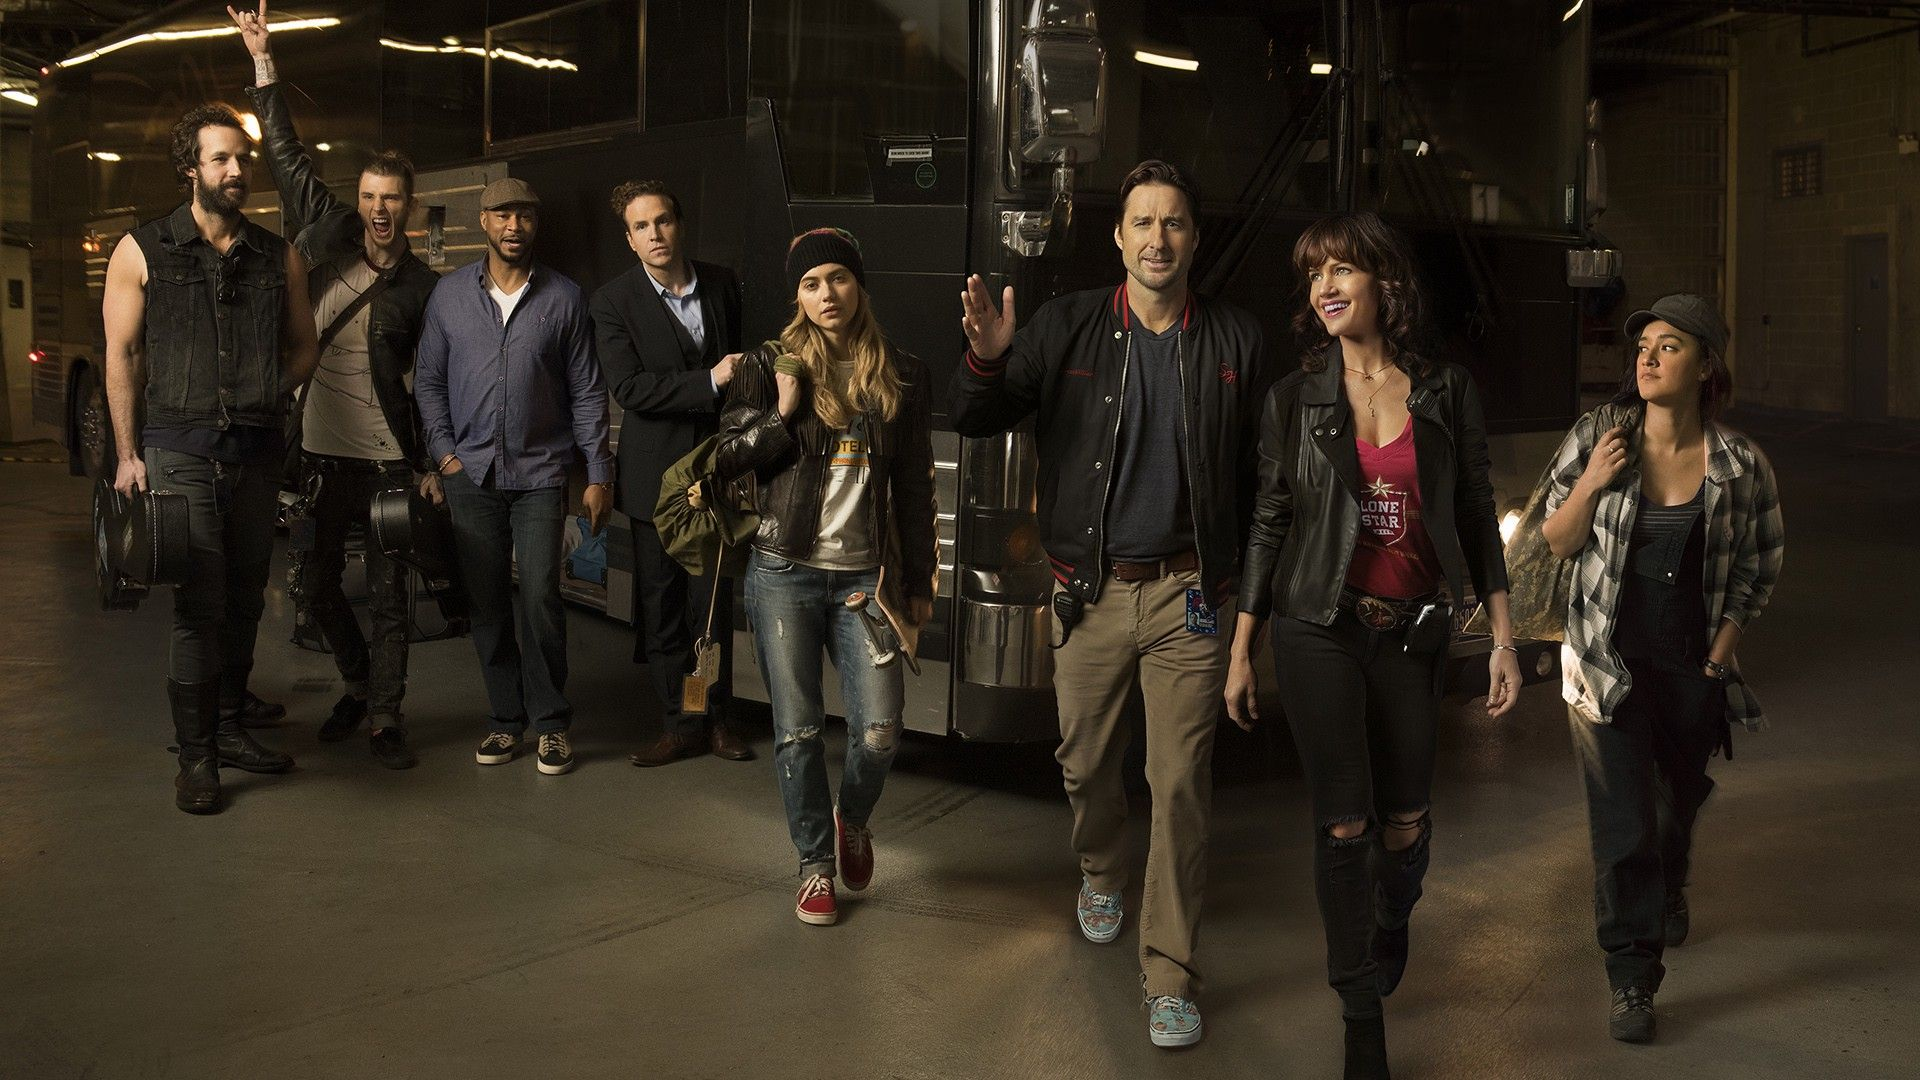 Кадр из сериала «Roadies». Фото: Showtime Networks Inc. / Showtime Digital Inc.